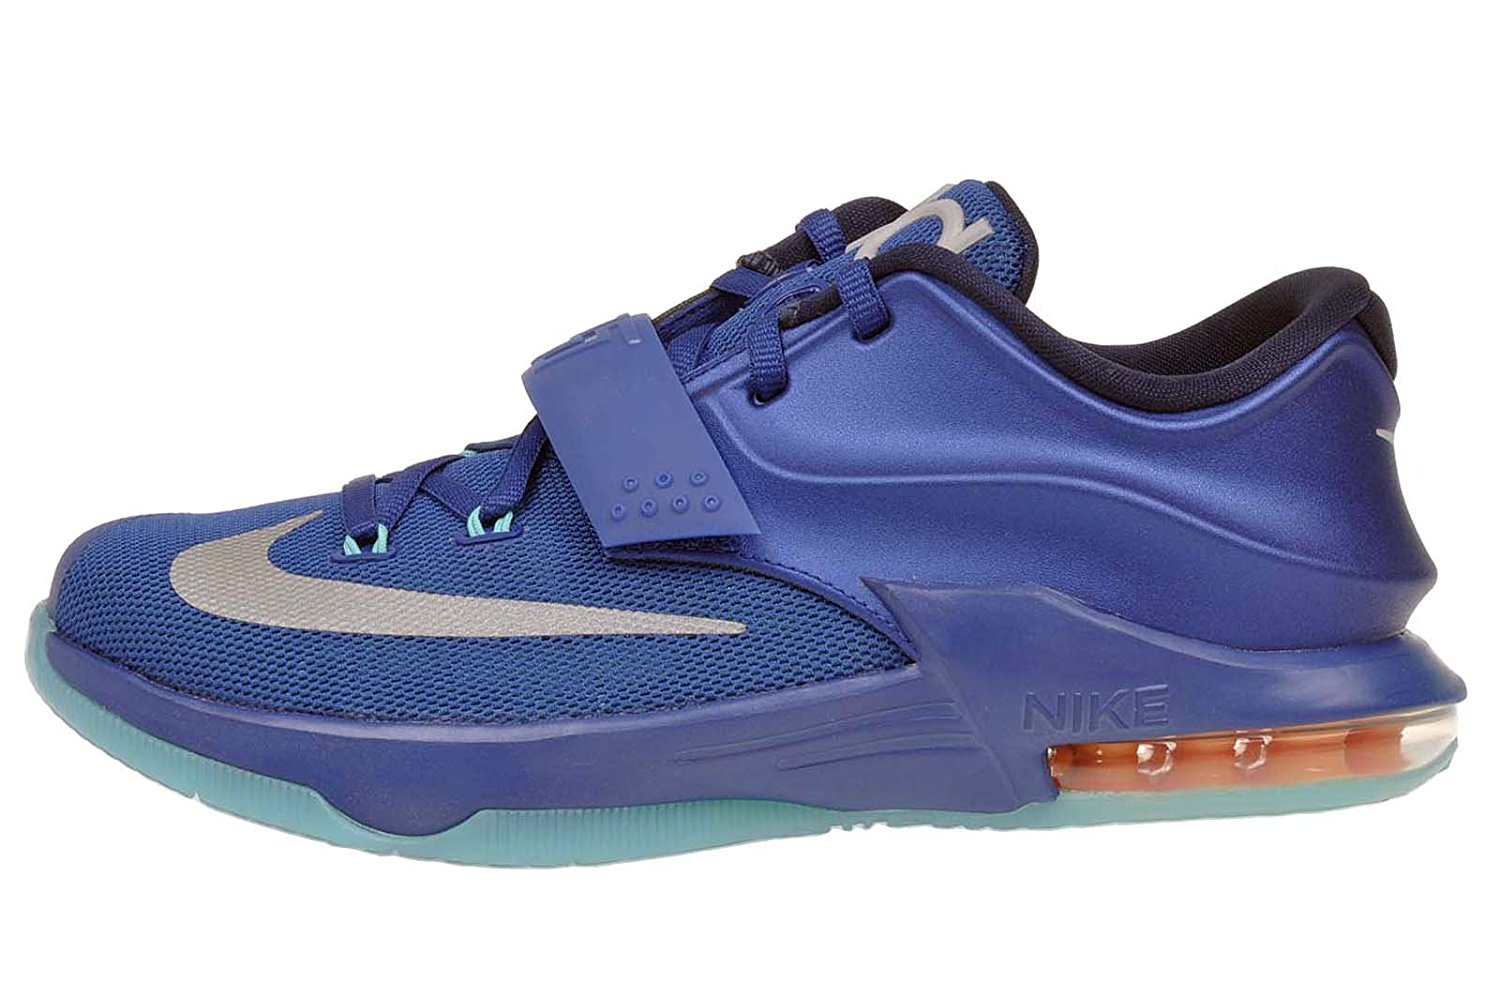 promo code 803fd e476d Get Quotations · Nike KD VII GS (Elite) Gym Blue Mtllc Silver-Light Retro